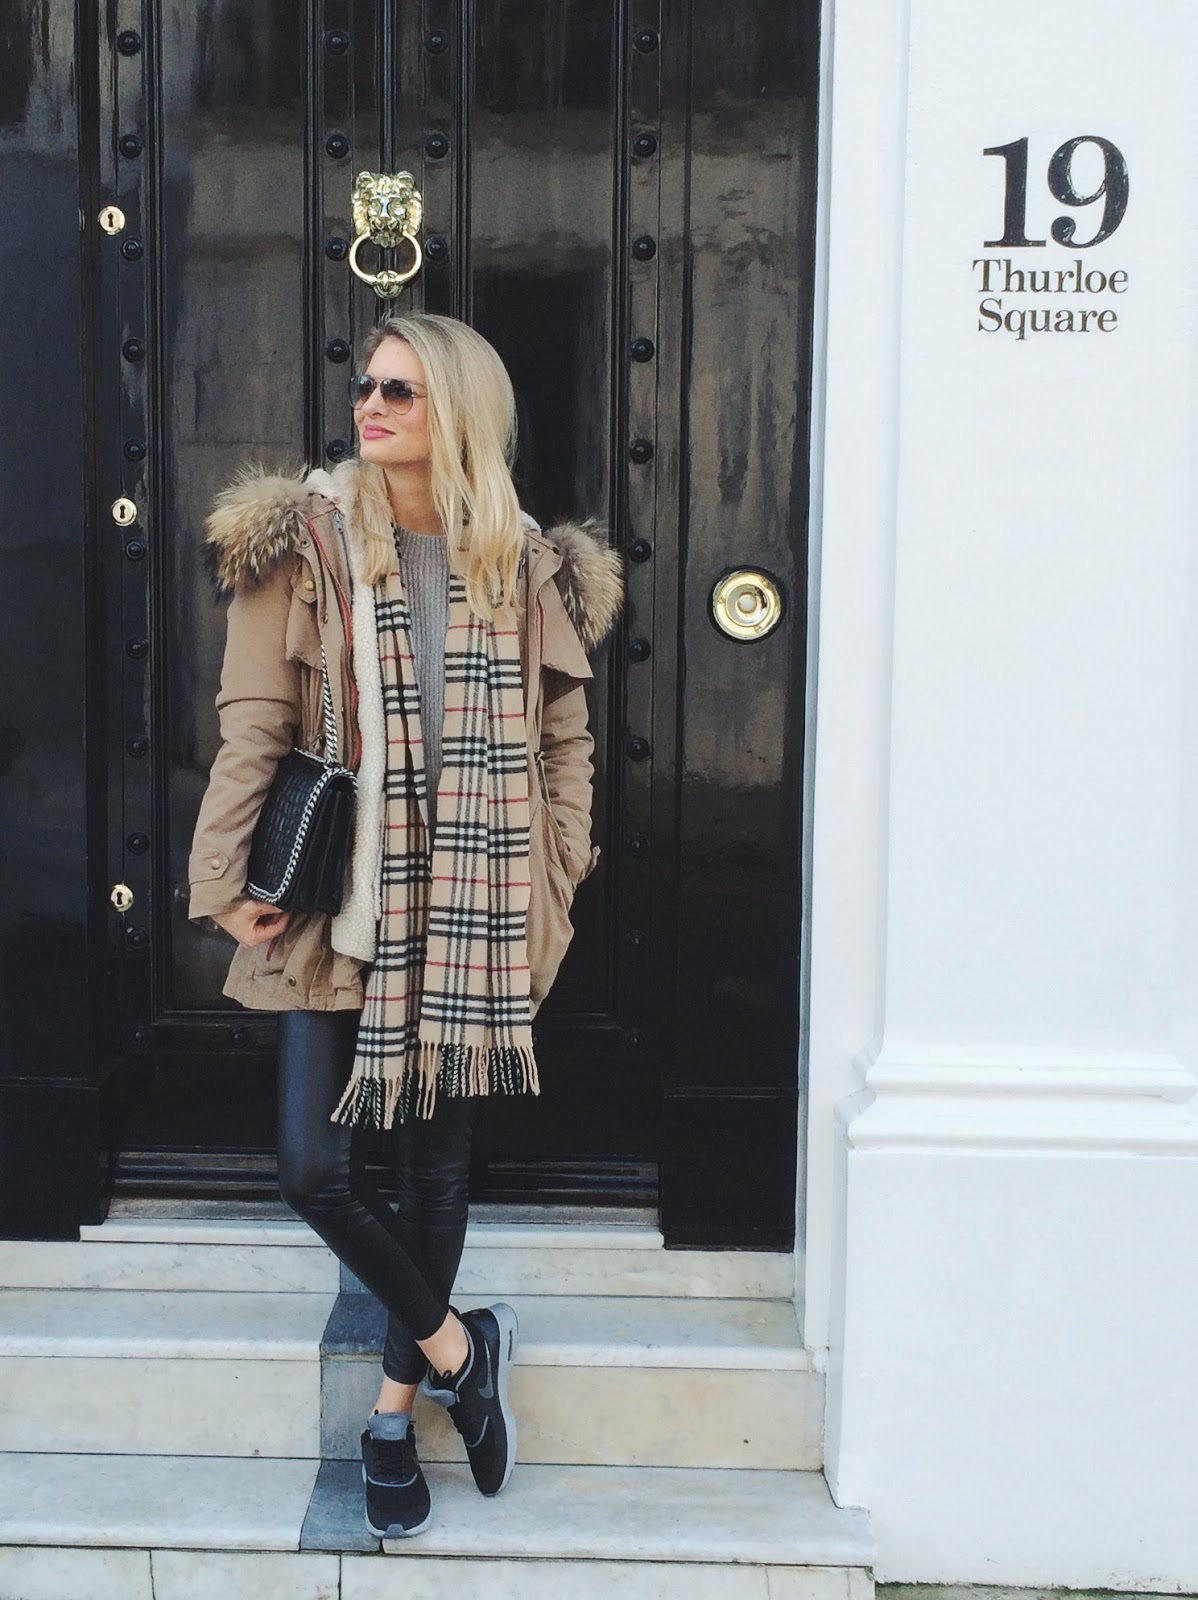 london blogger, minusey parka, minusey racoon parka, camel parka, leather leggings and nike trainers, nike trainers street style, ray ban glasses, ray ban sunglasses, parka with shearling